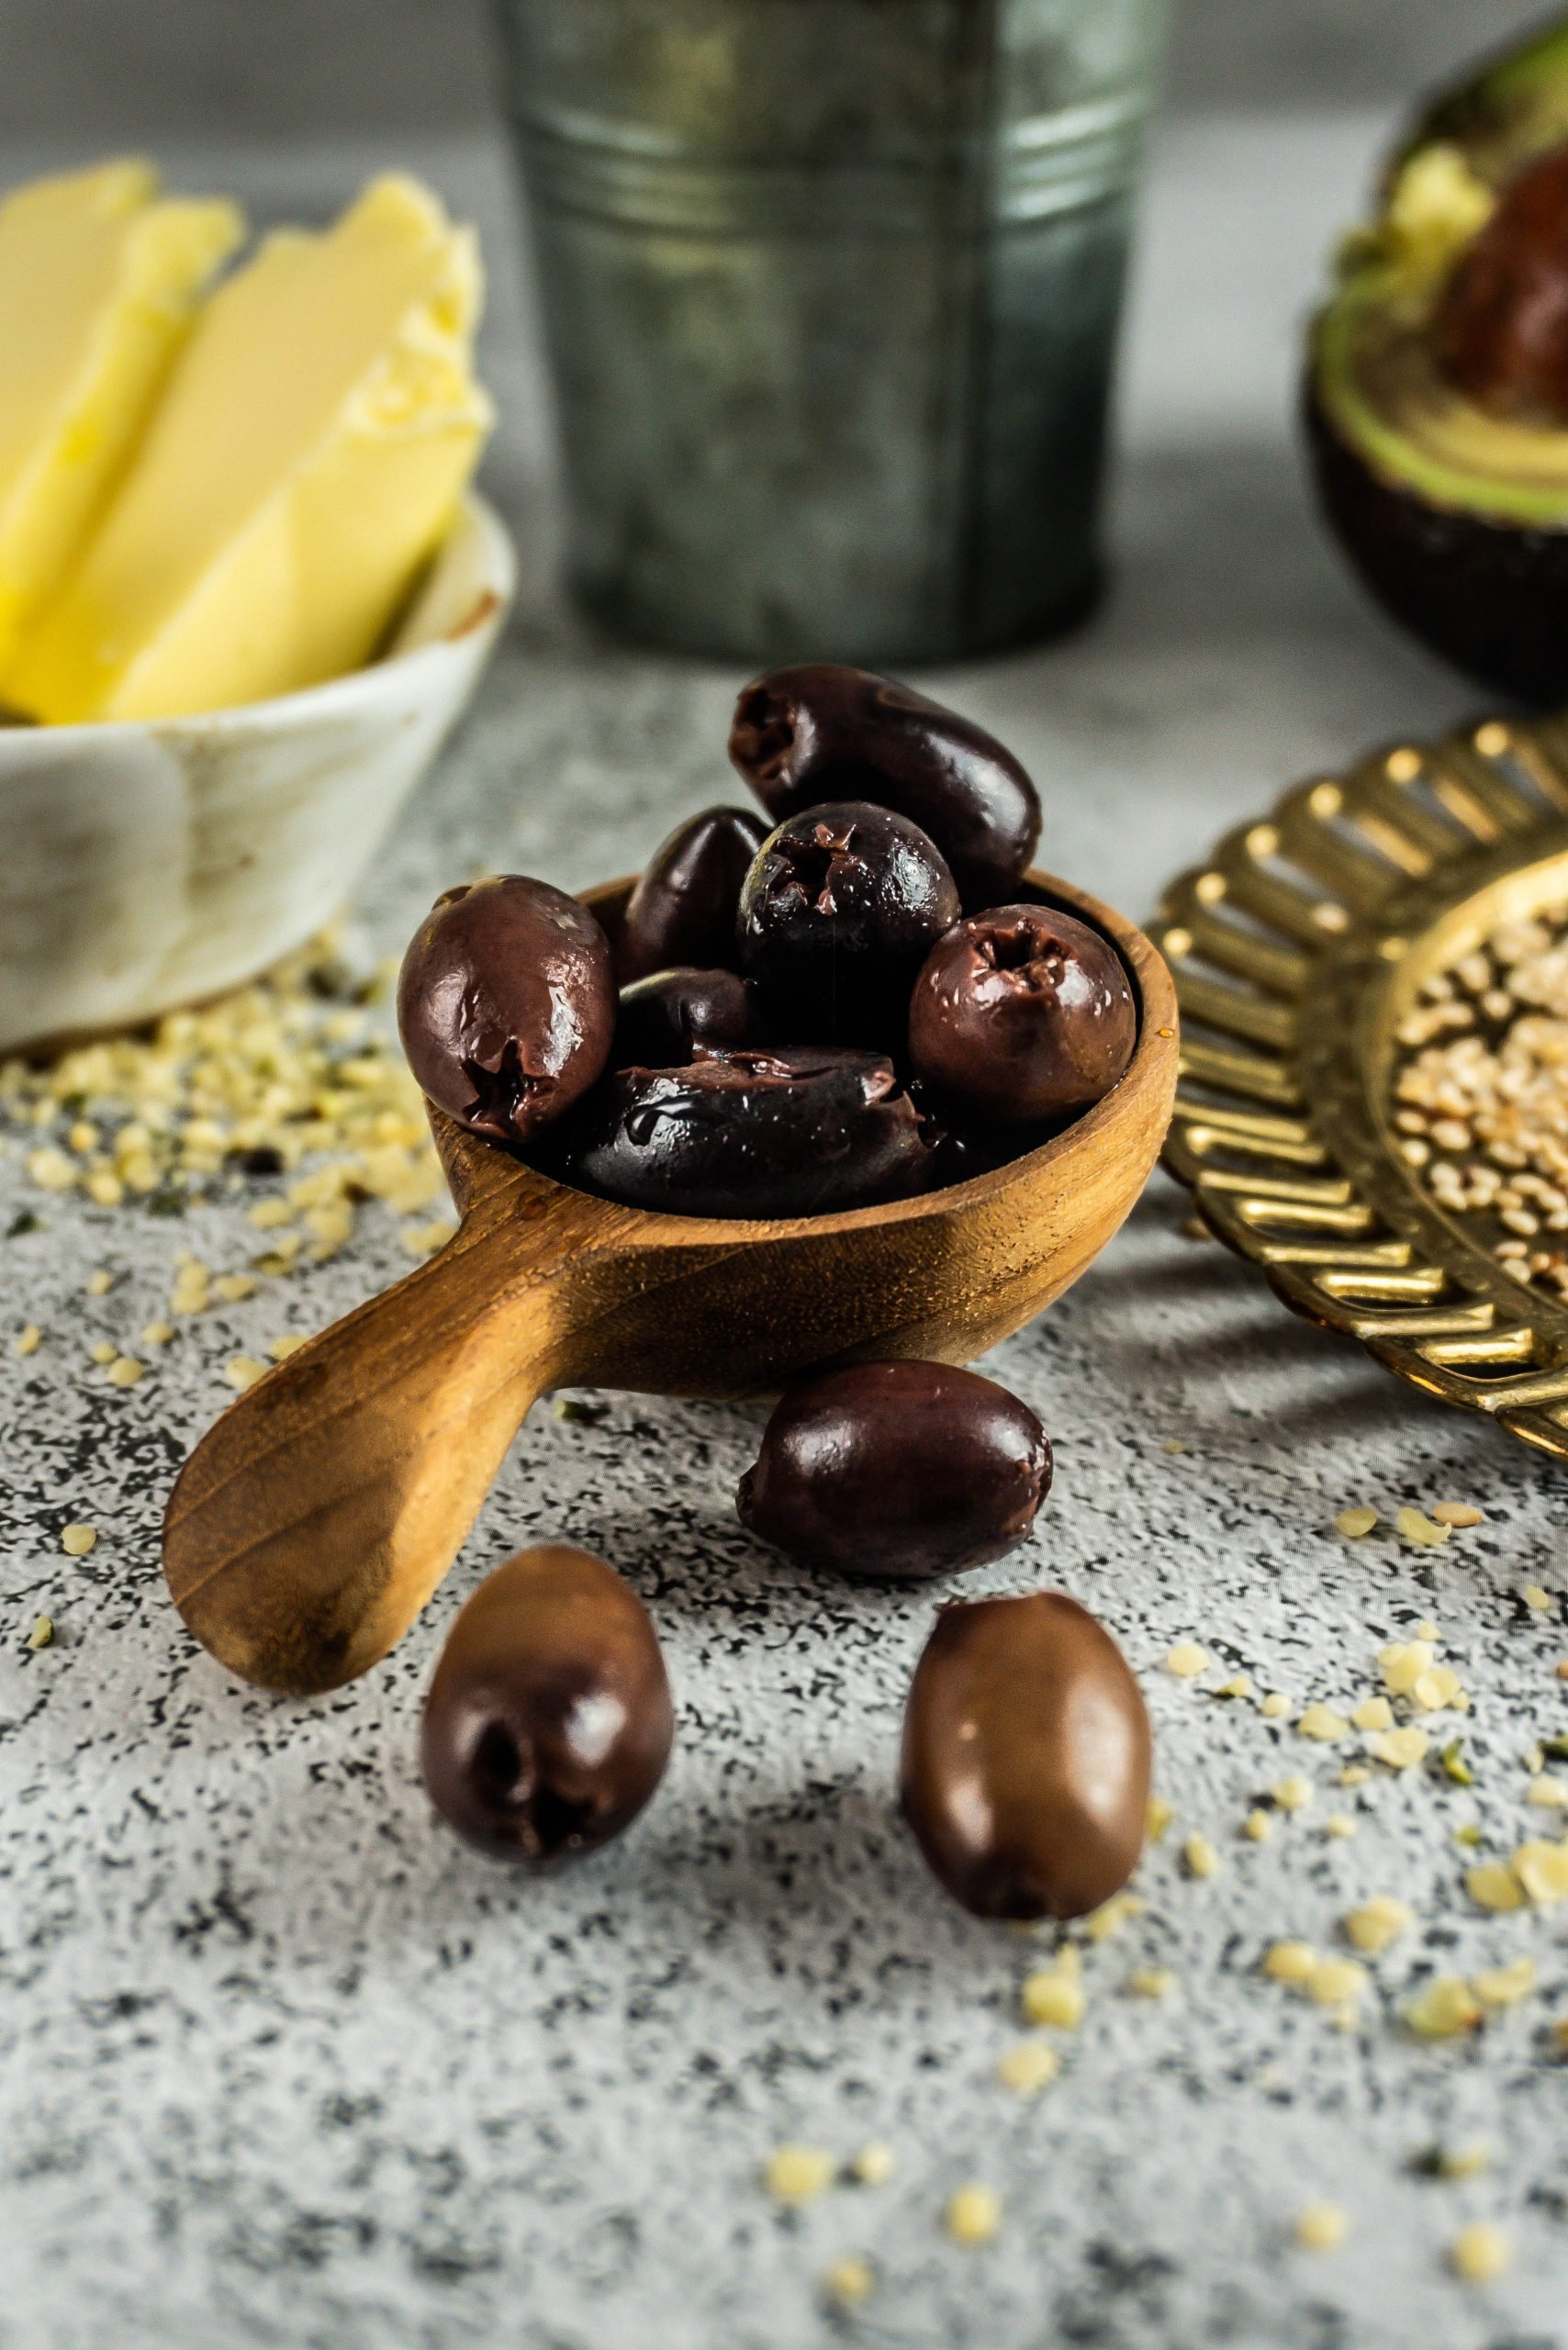 Olives stacked on a wooden spoon